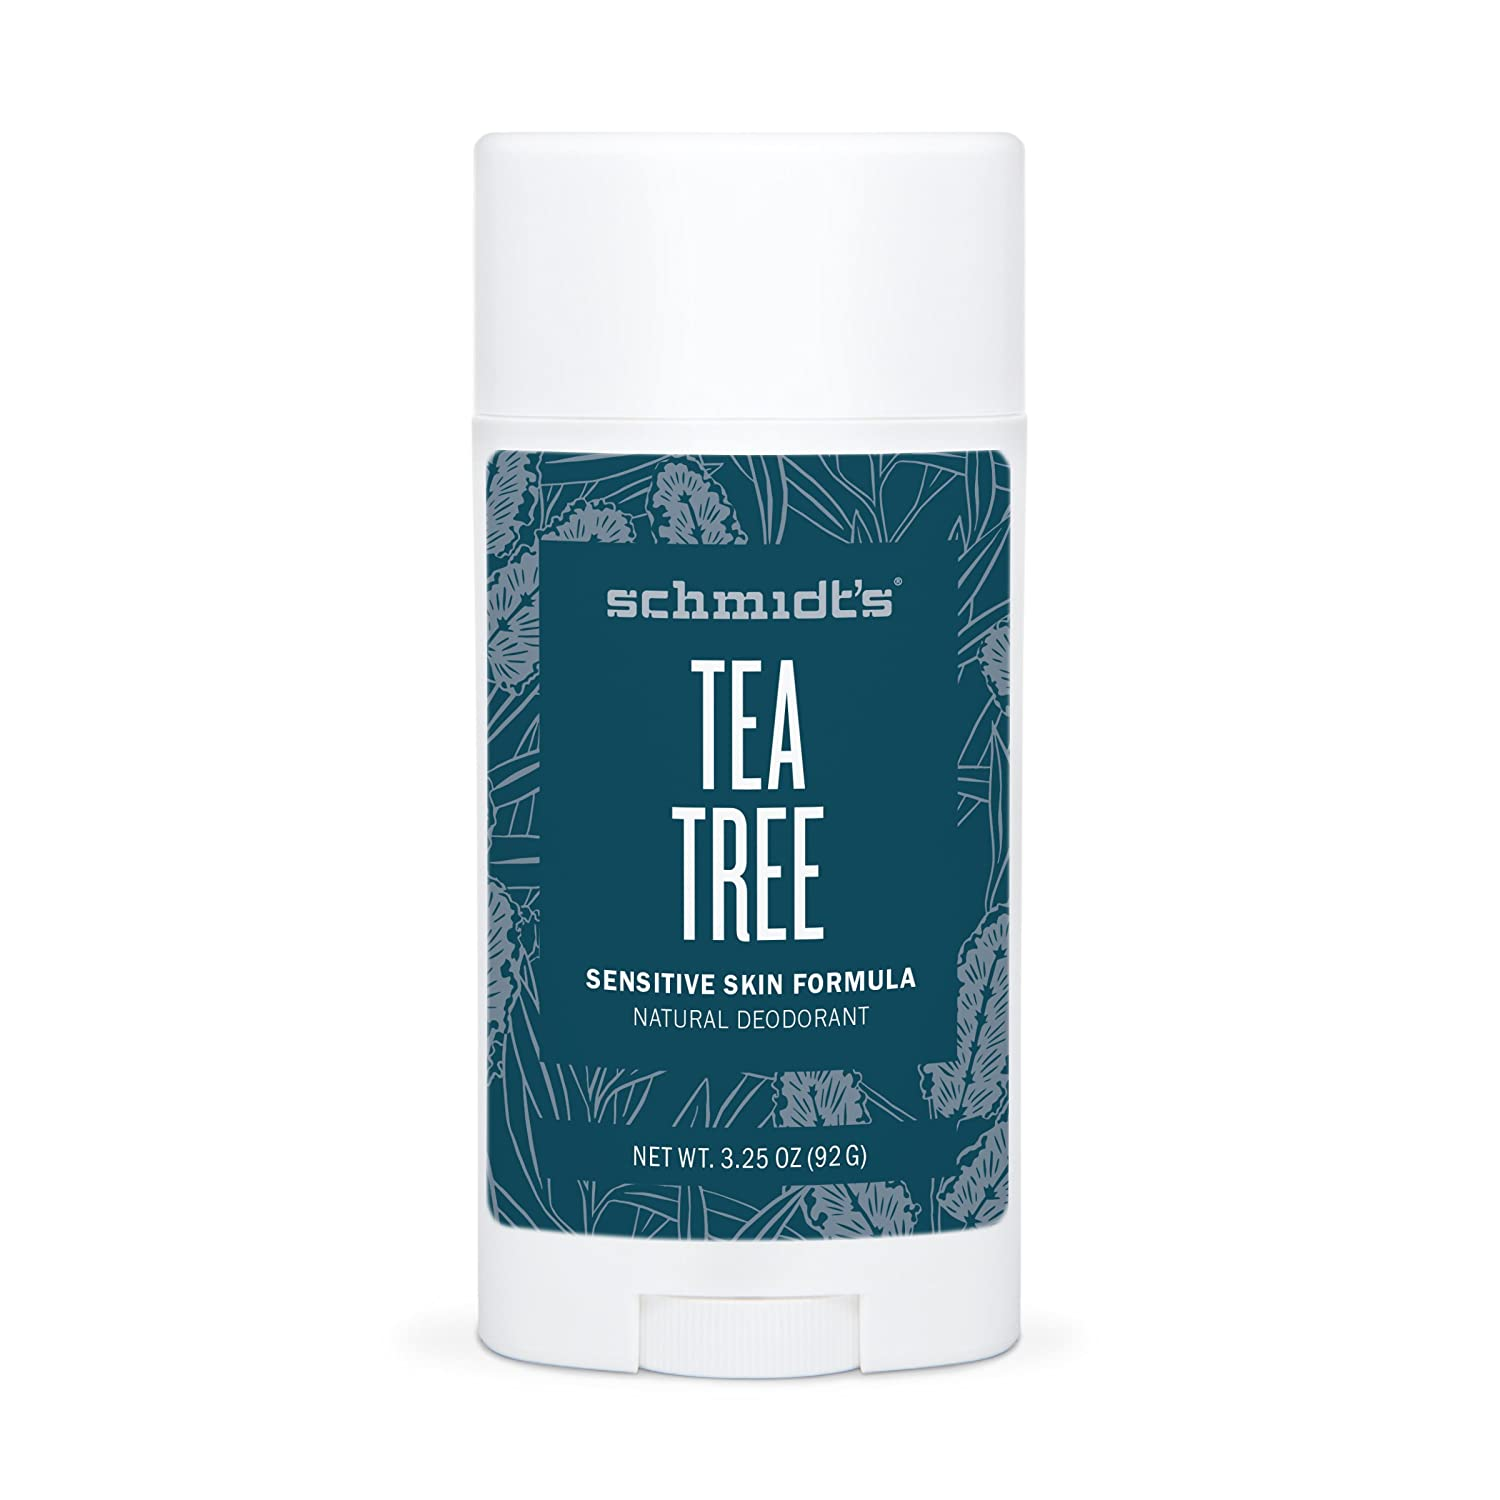 Schmidts Natural DeodorantTM - Tea Tree Sensitive Skin Stick (3.25 oz.; Odor Protection & Wetness Relief; Aluminum-Free) by Schmidts Deodorant: Amazon.es: ...